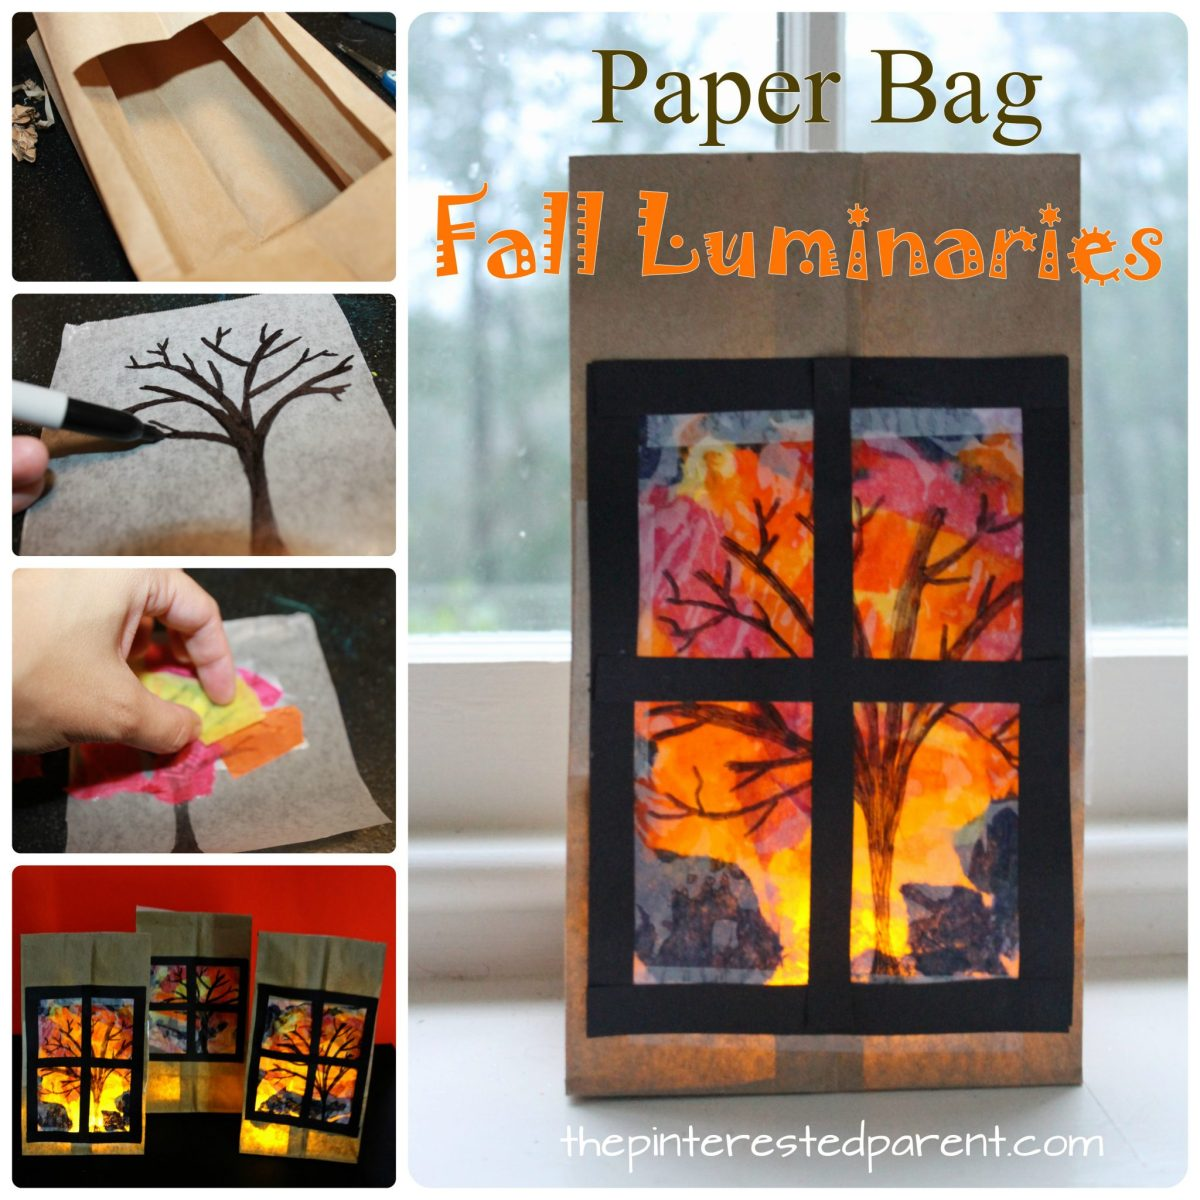 Paper Bag Fall Luminaries